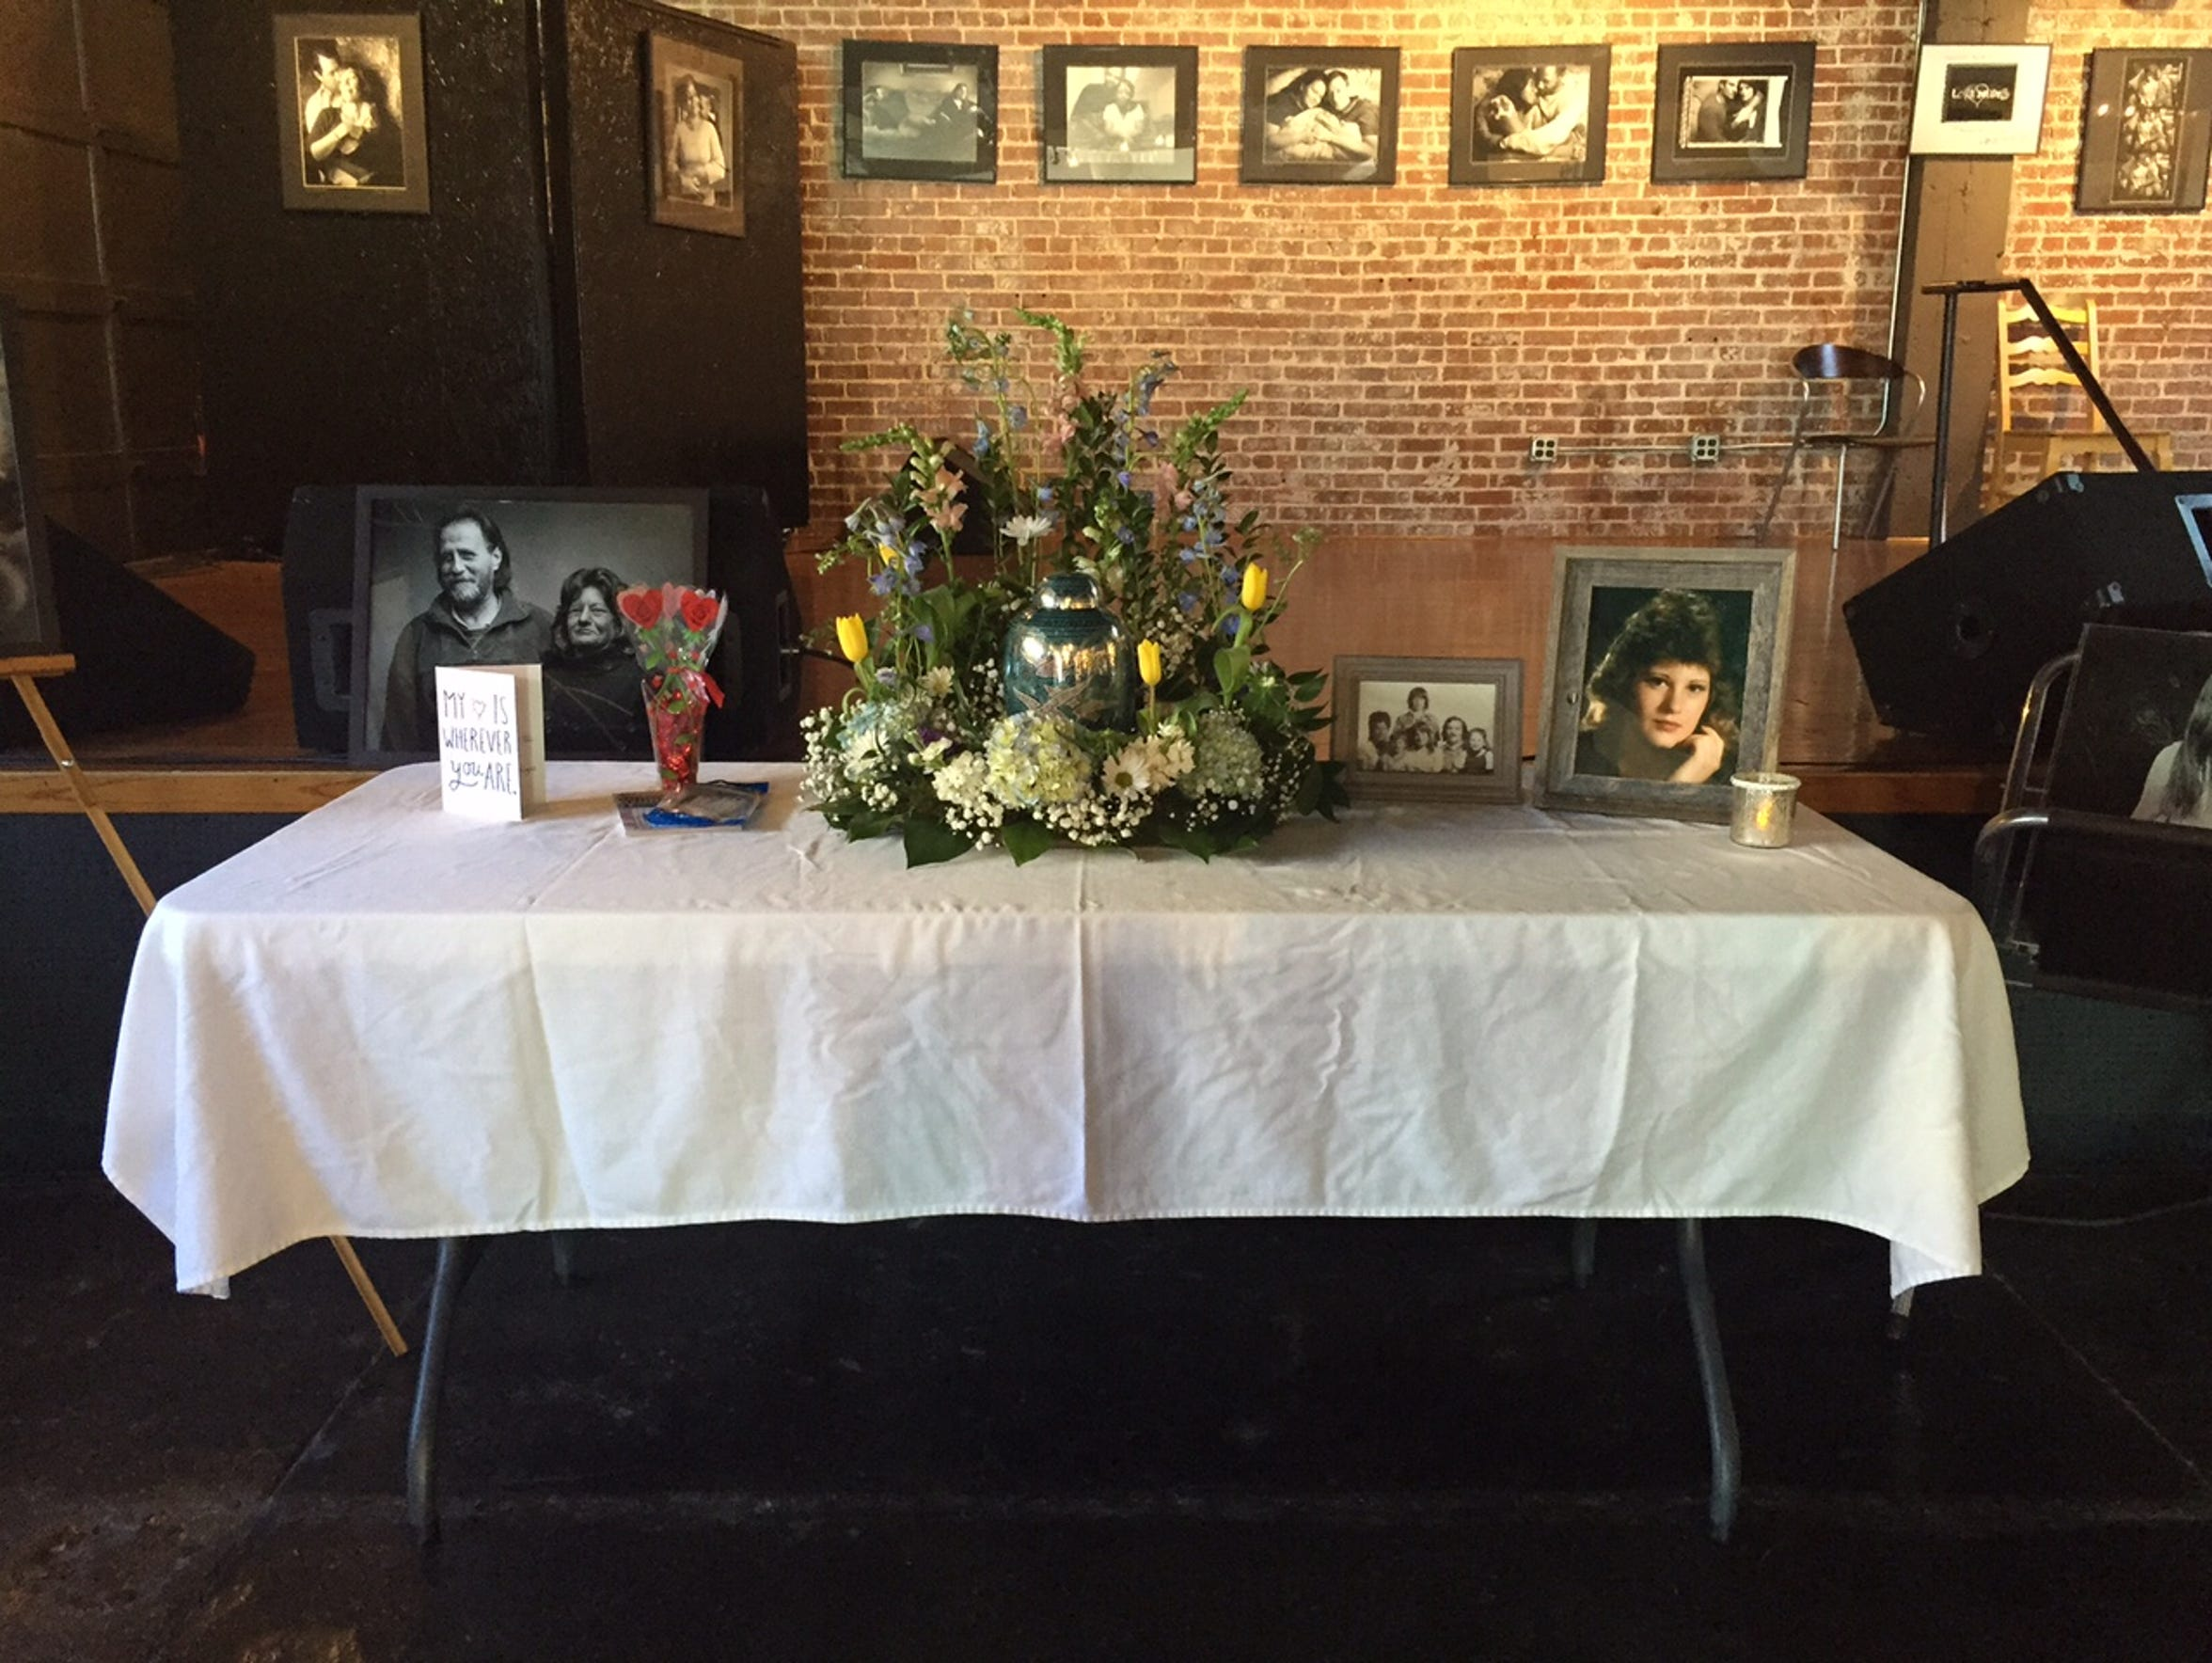 A memorial service for Petra Hensler was held March